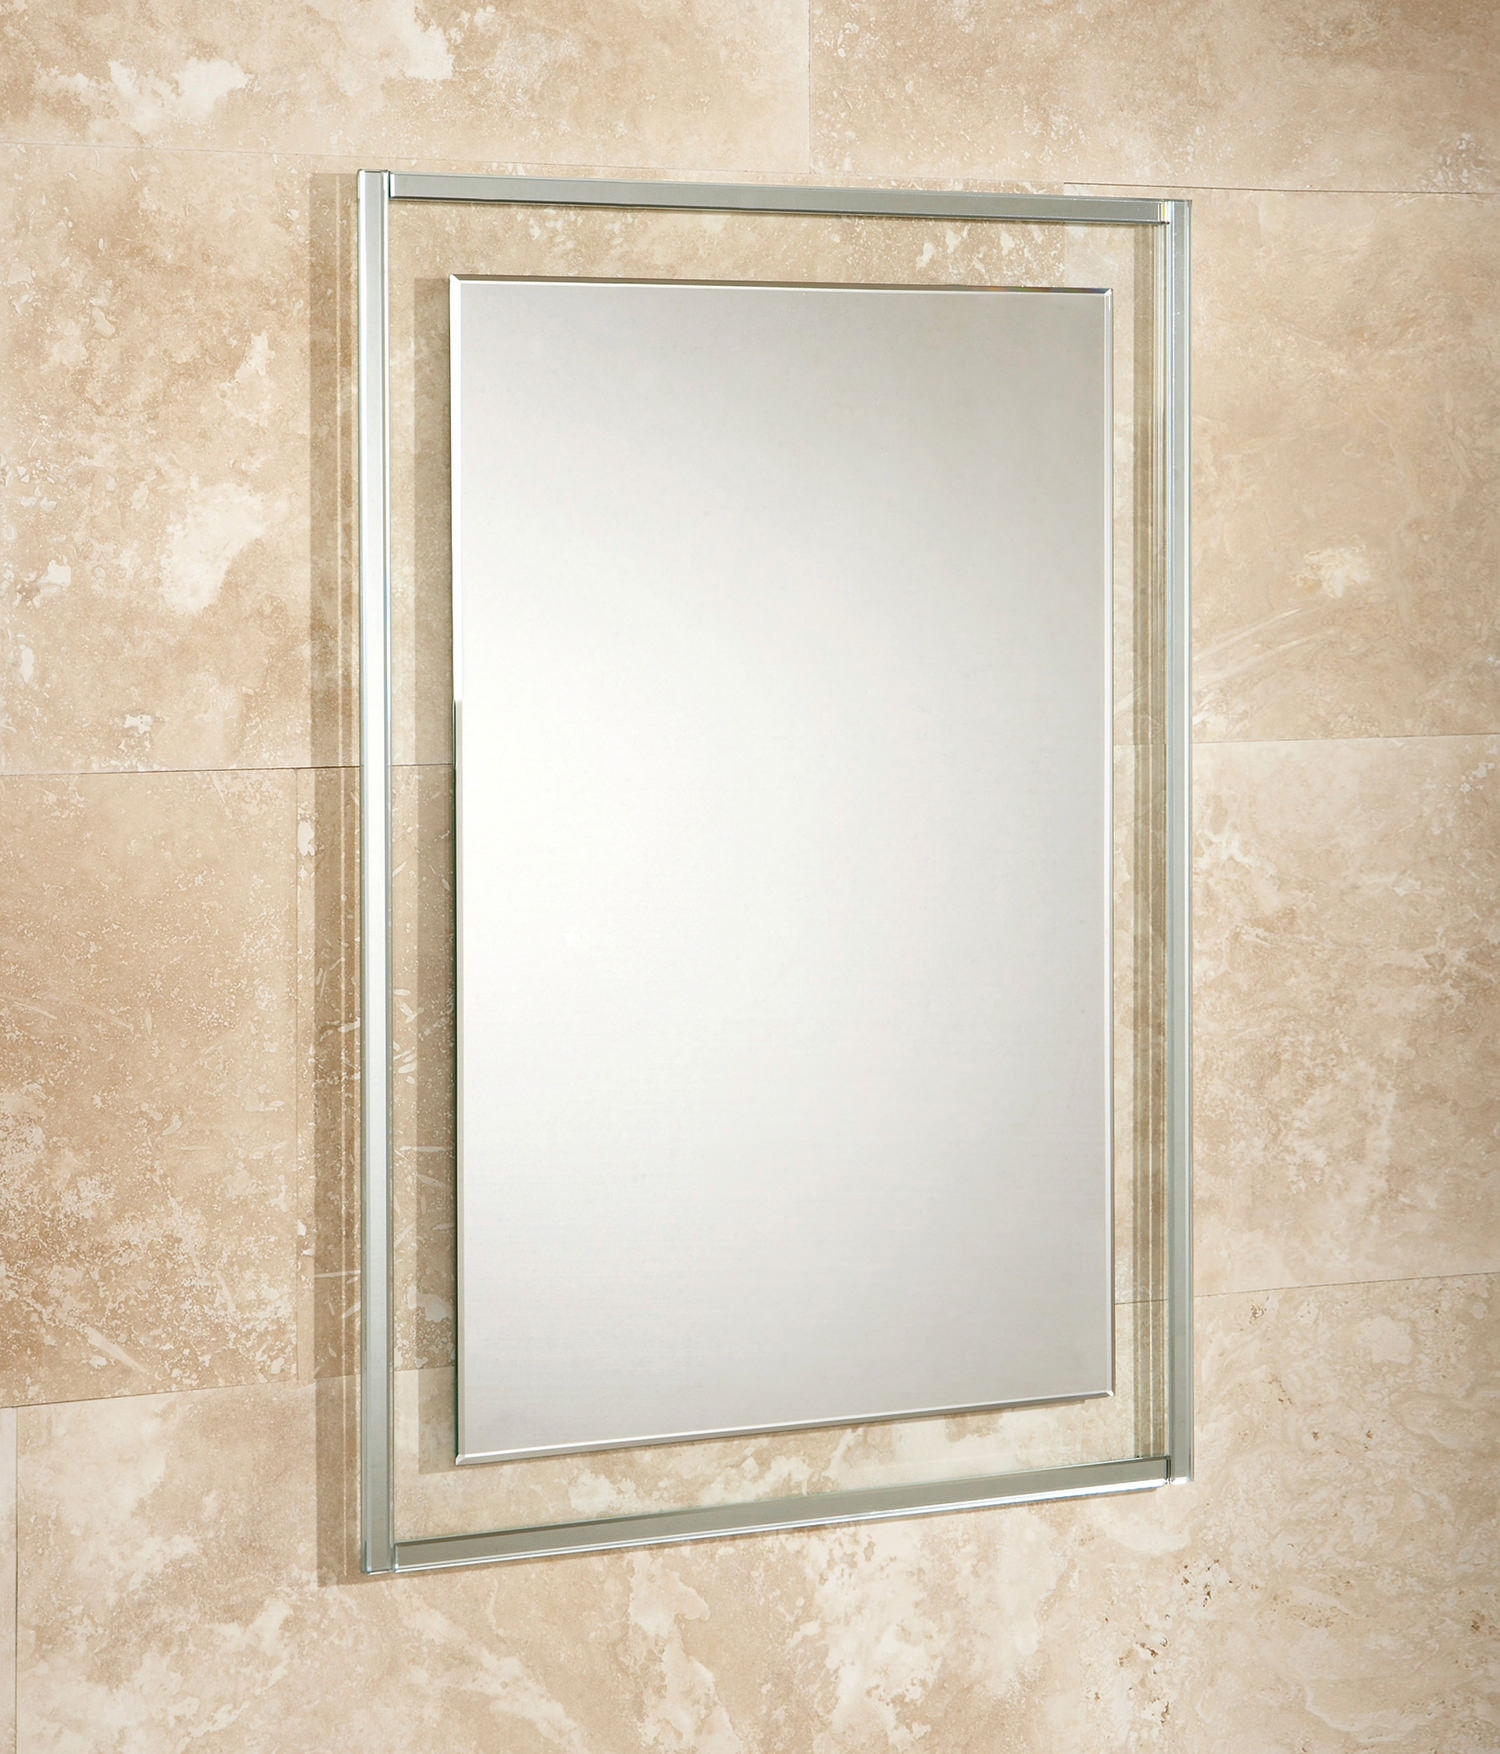 Round Bathroom Mirrors Amazon Creative Bathroom Decoration Pertaining To Large Bevelled Edge Mirror (Image 12 of 15)